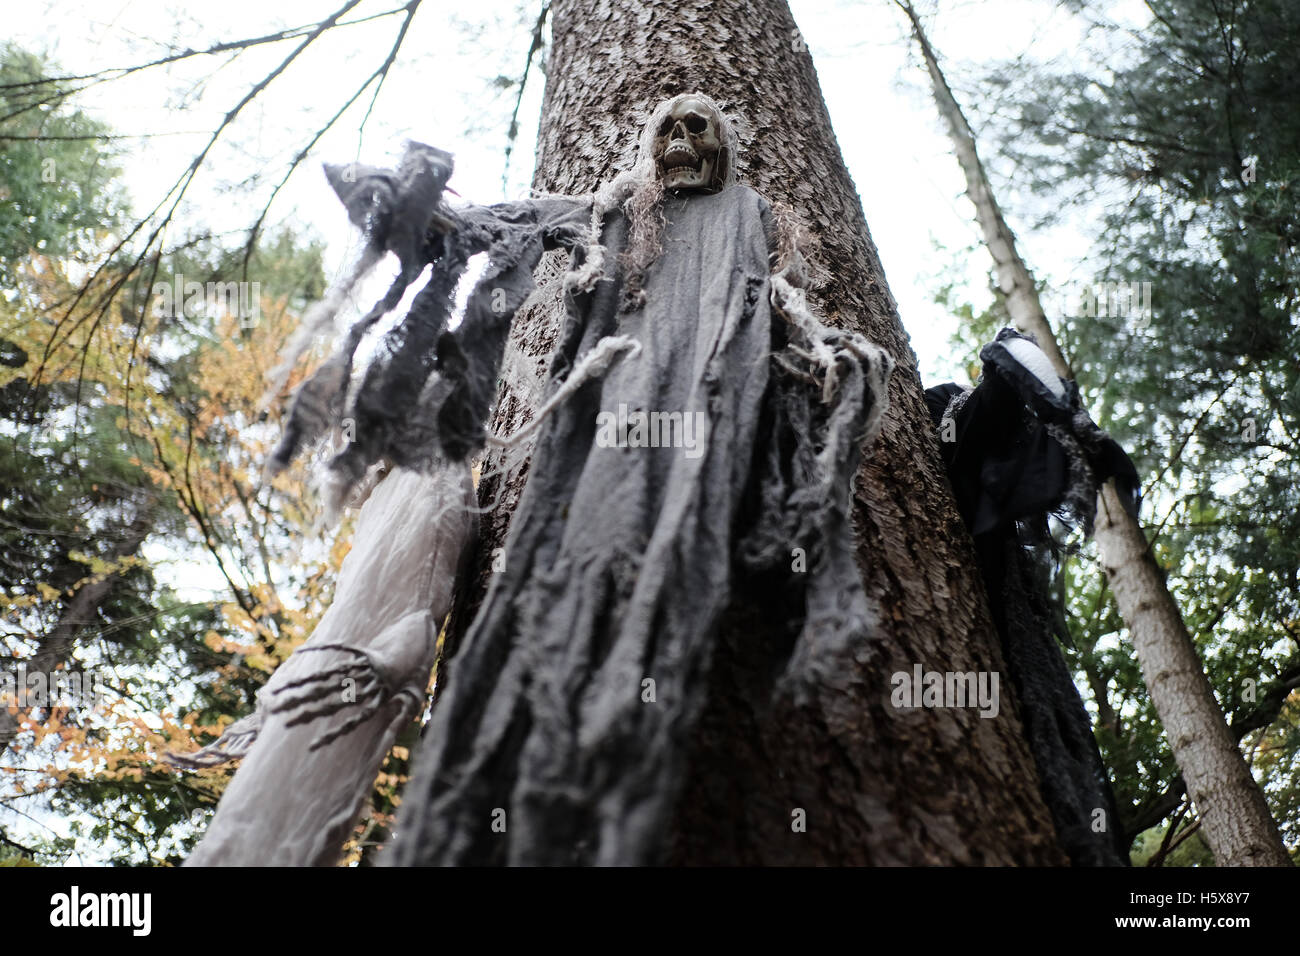 Scary Halloween skeleton draped in rags on a tree in a wood - Stock Image